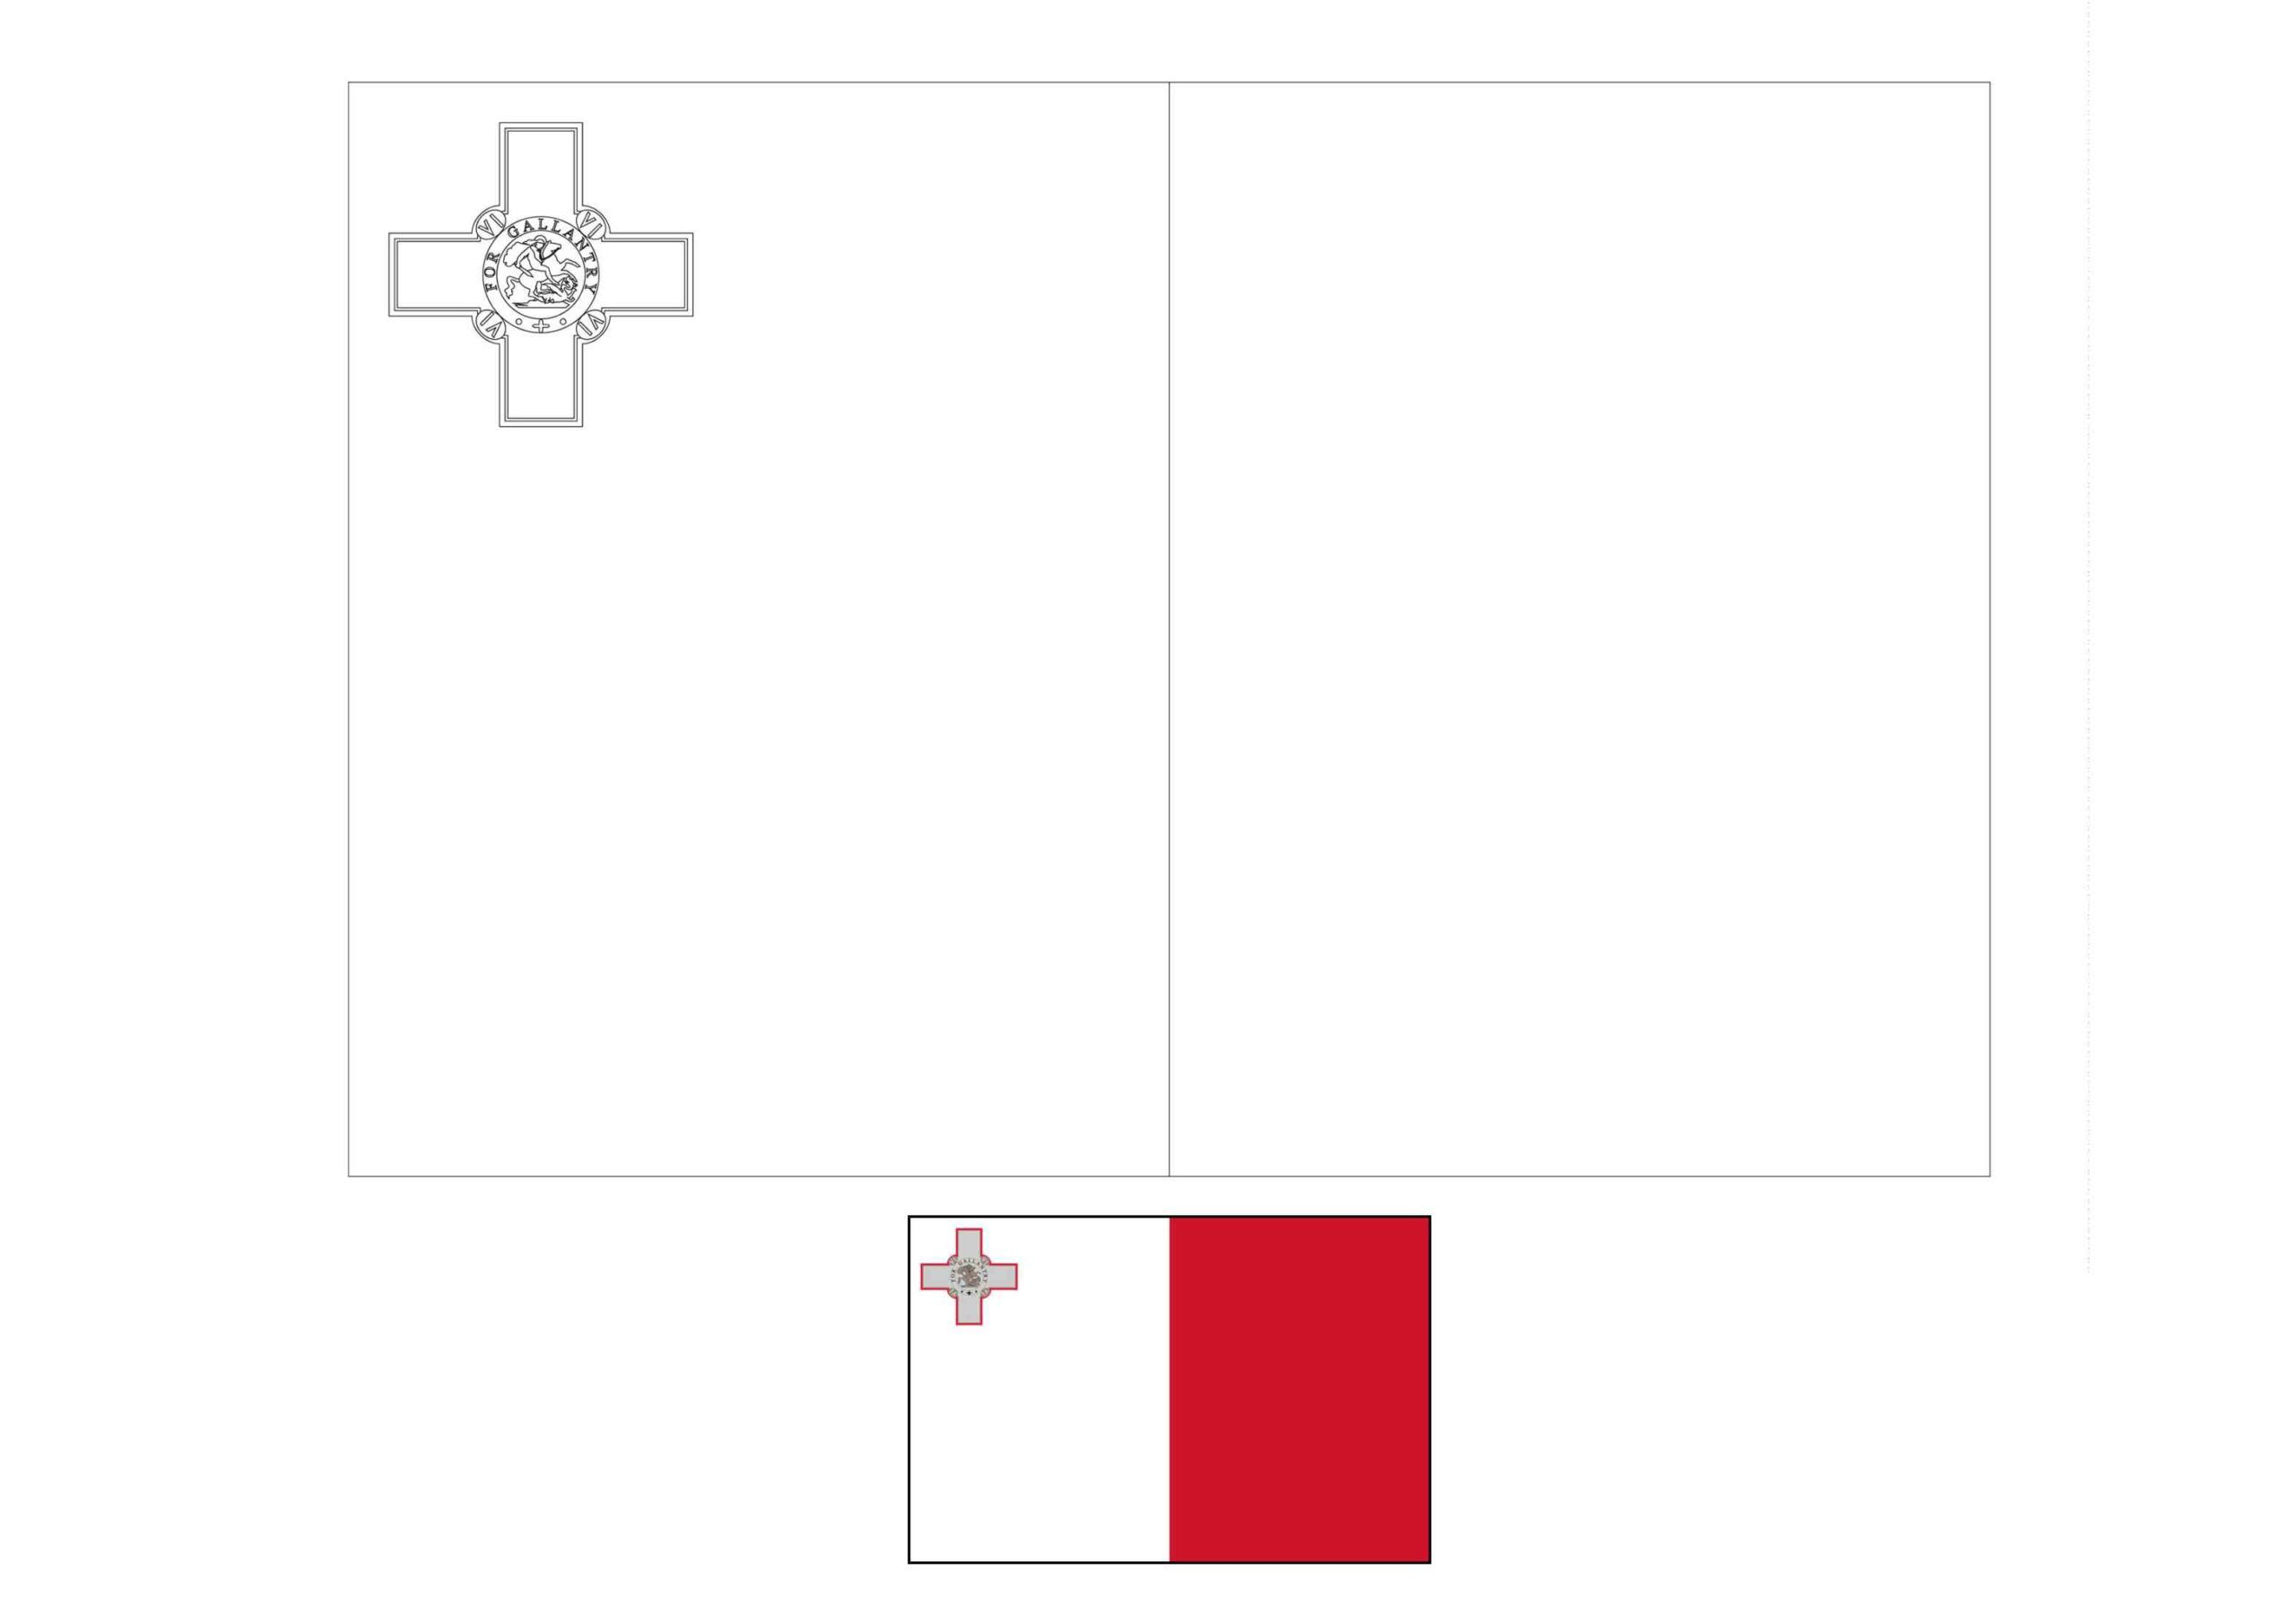 Malta Flag Coloring Page In 2020 Flag Coloring Pages Coloring Pages